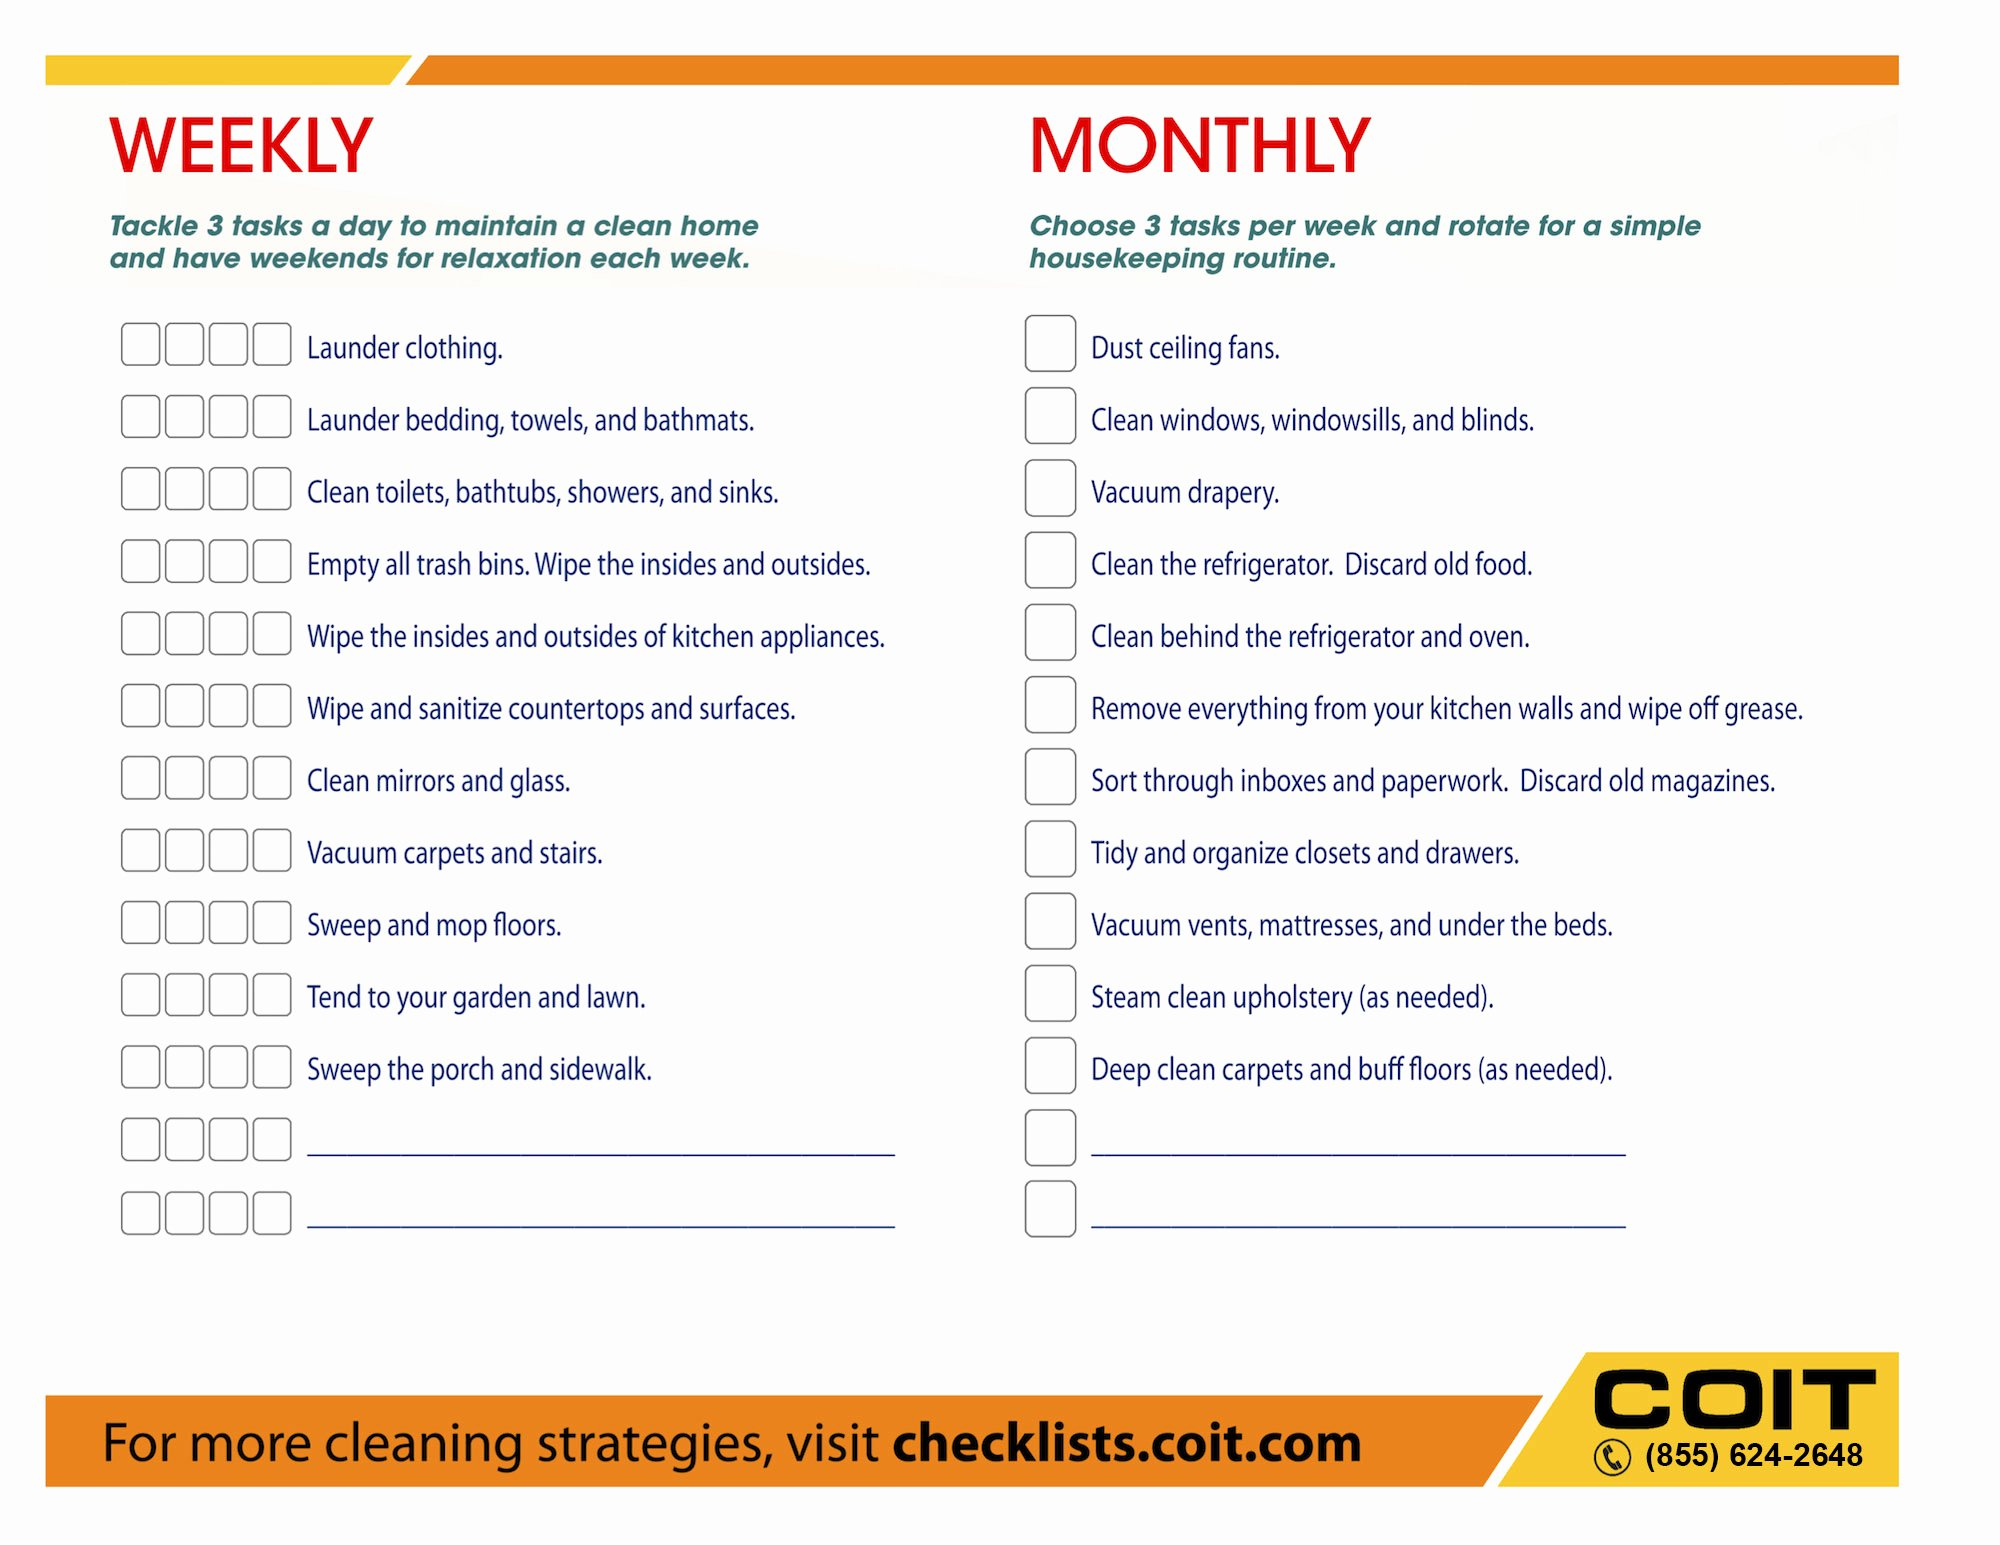 Weekly and Monthly House Cleaning Checklist